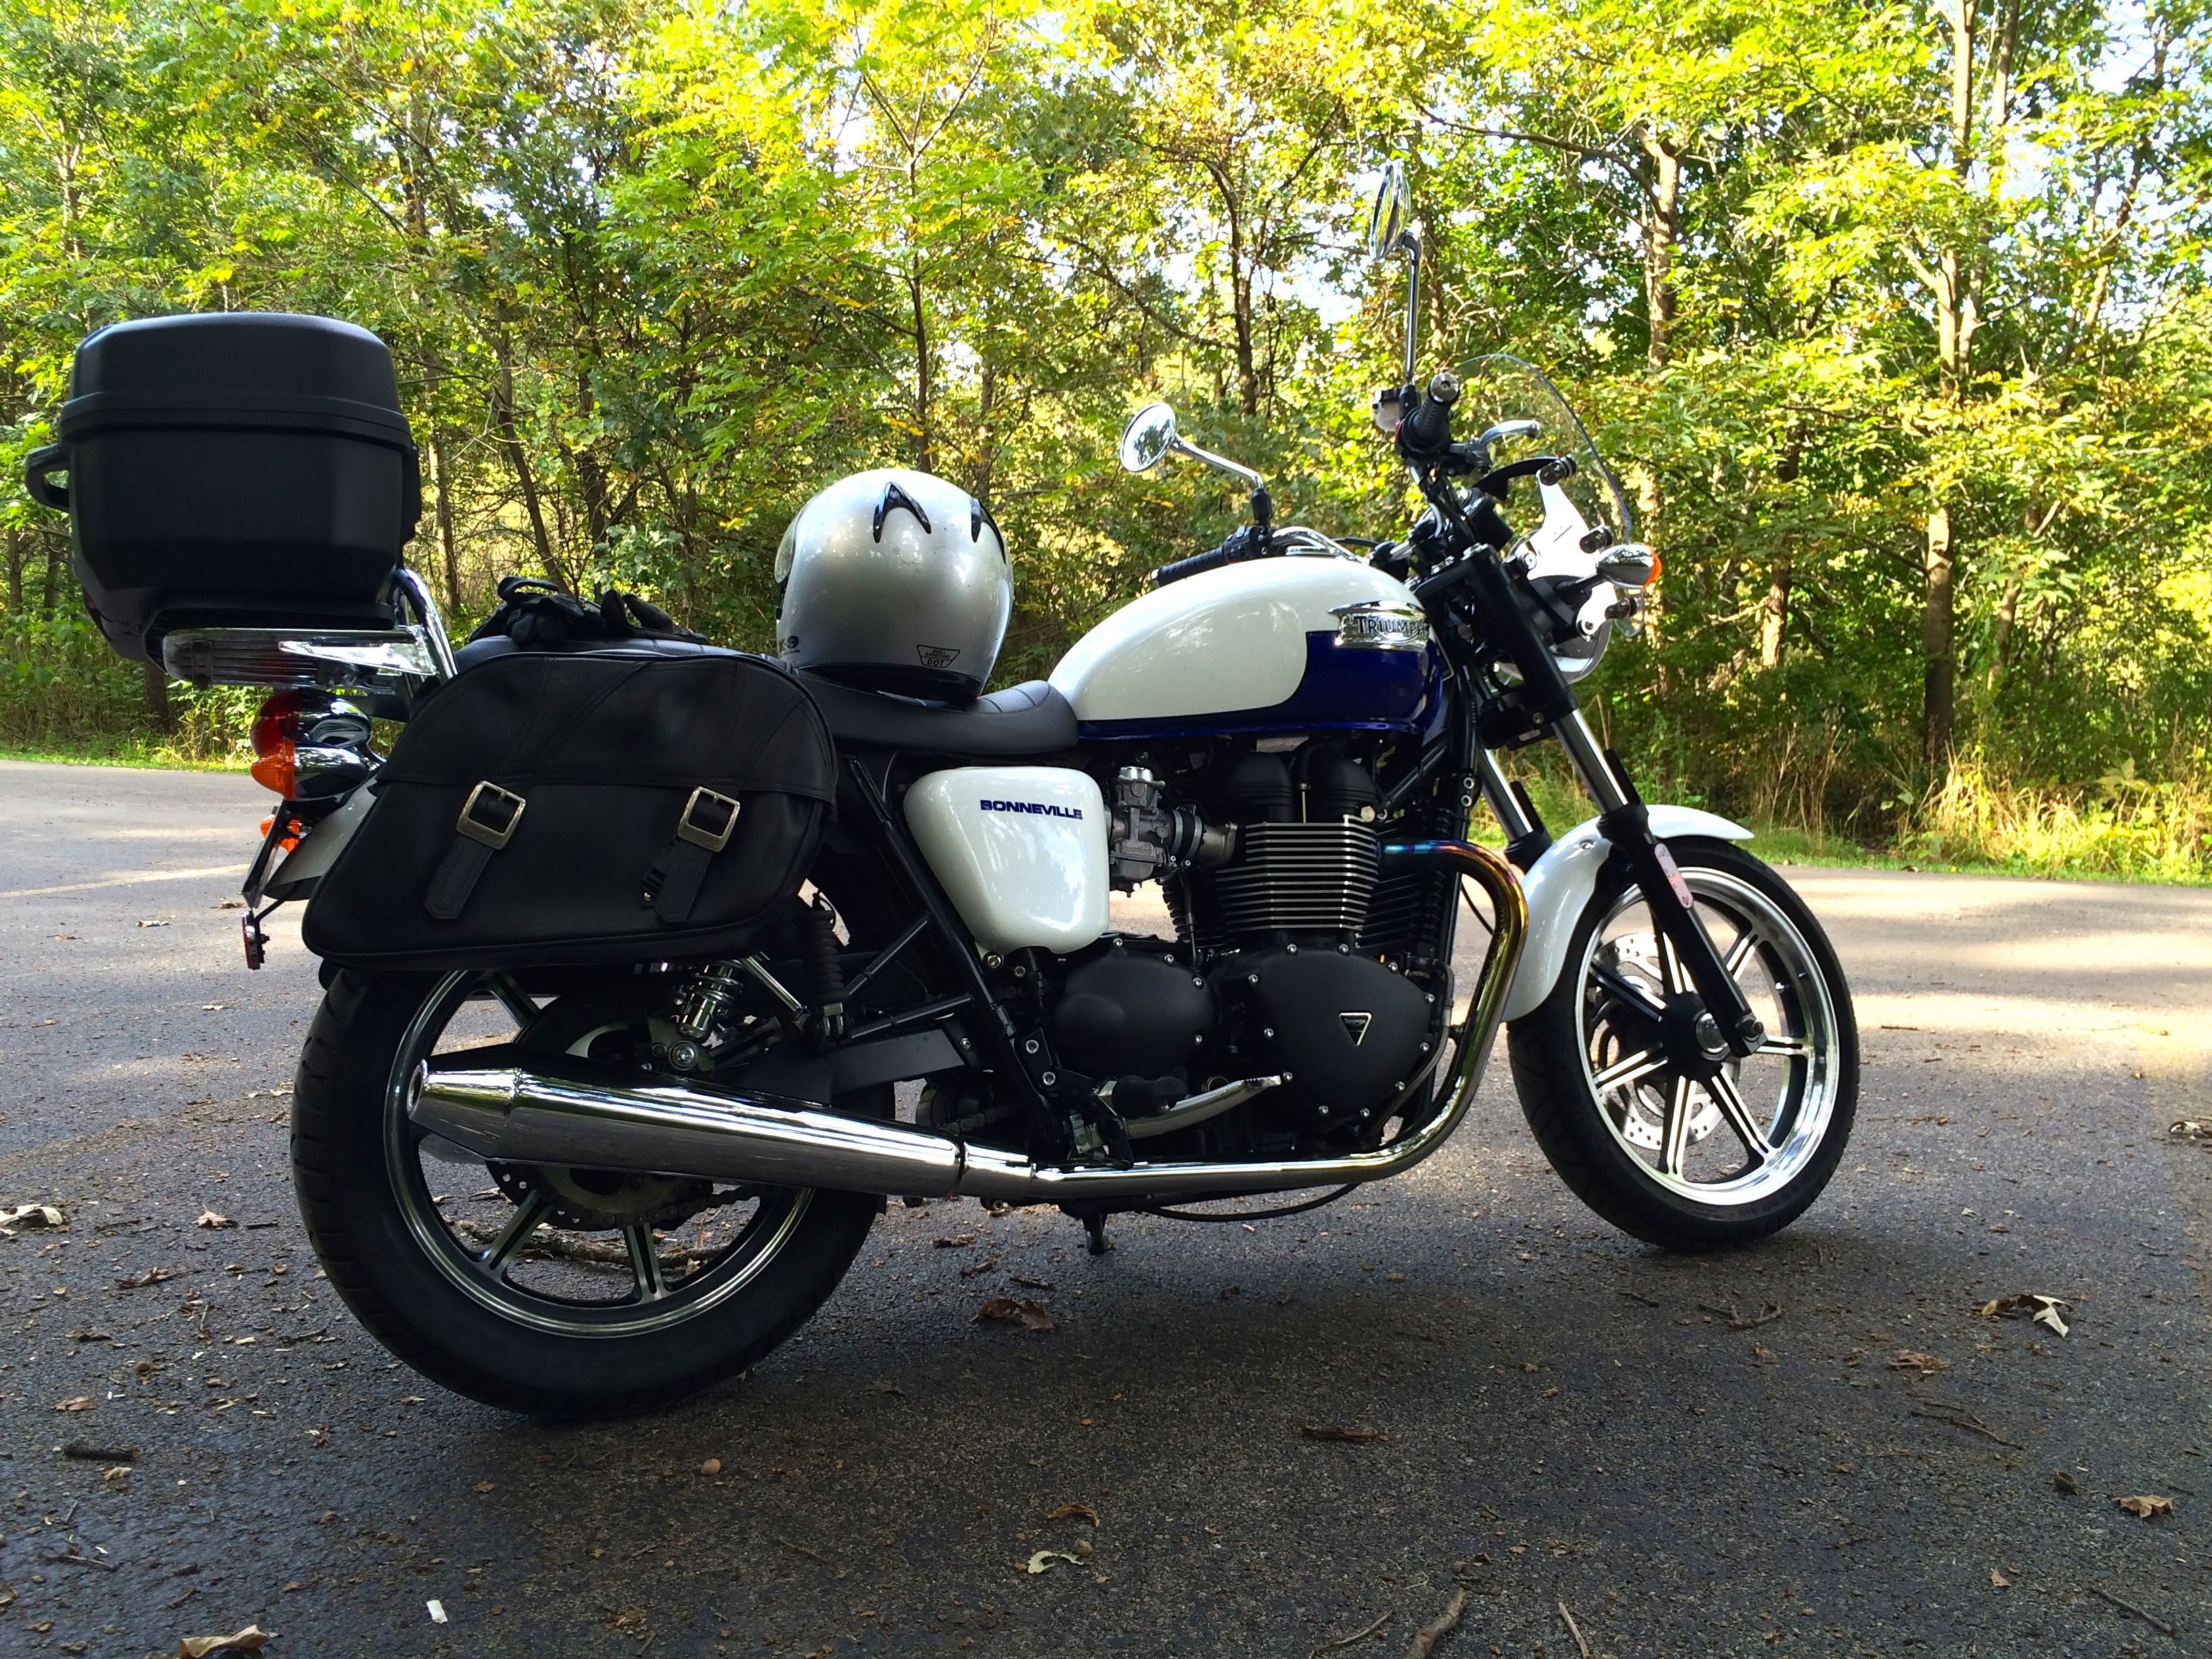 My companion last week, a Triumph Bonneville.